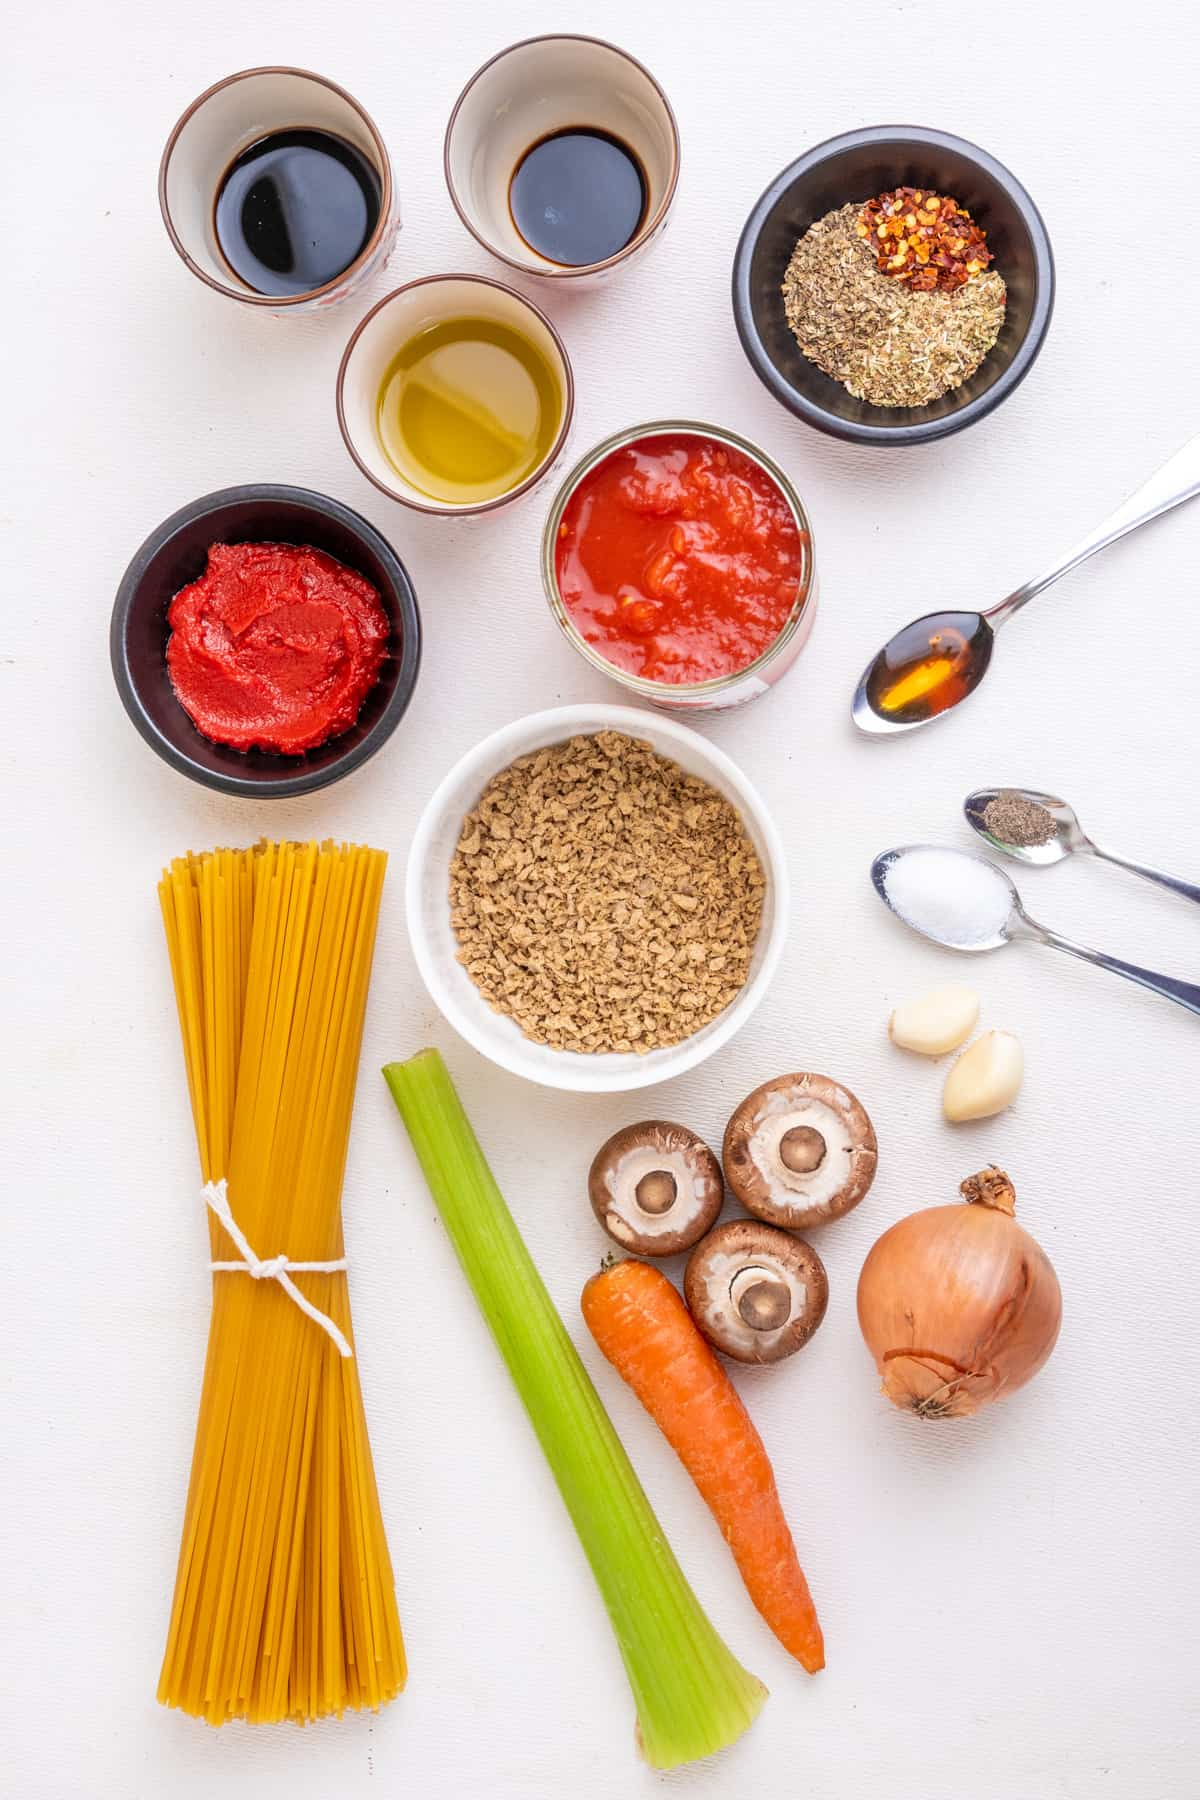 The ingredients for vegan bolognese. Dried soy mince provides the meaty texture. There's also some vegetables, chopped tomatoes, tomato puree, olive oil, herbs and various condiments and dry ingredients for seasoning.